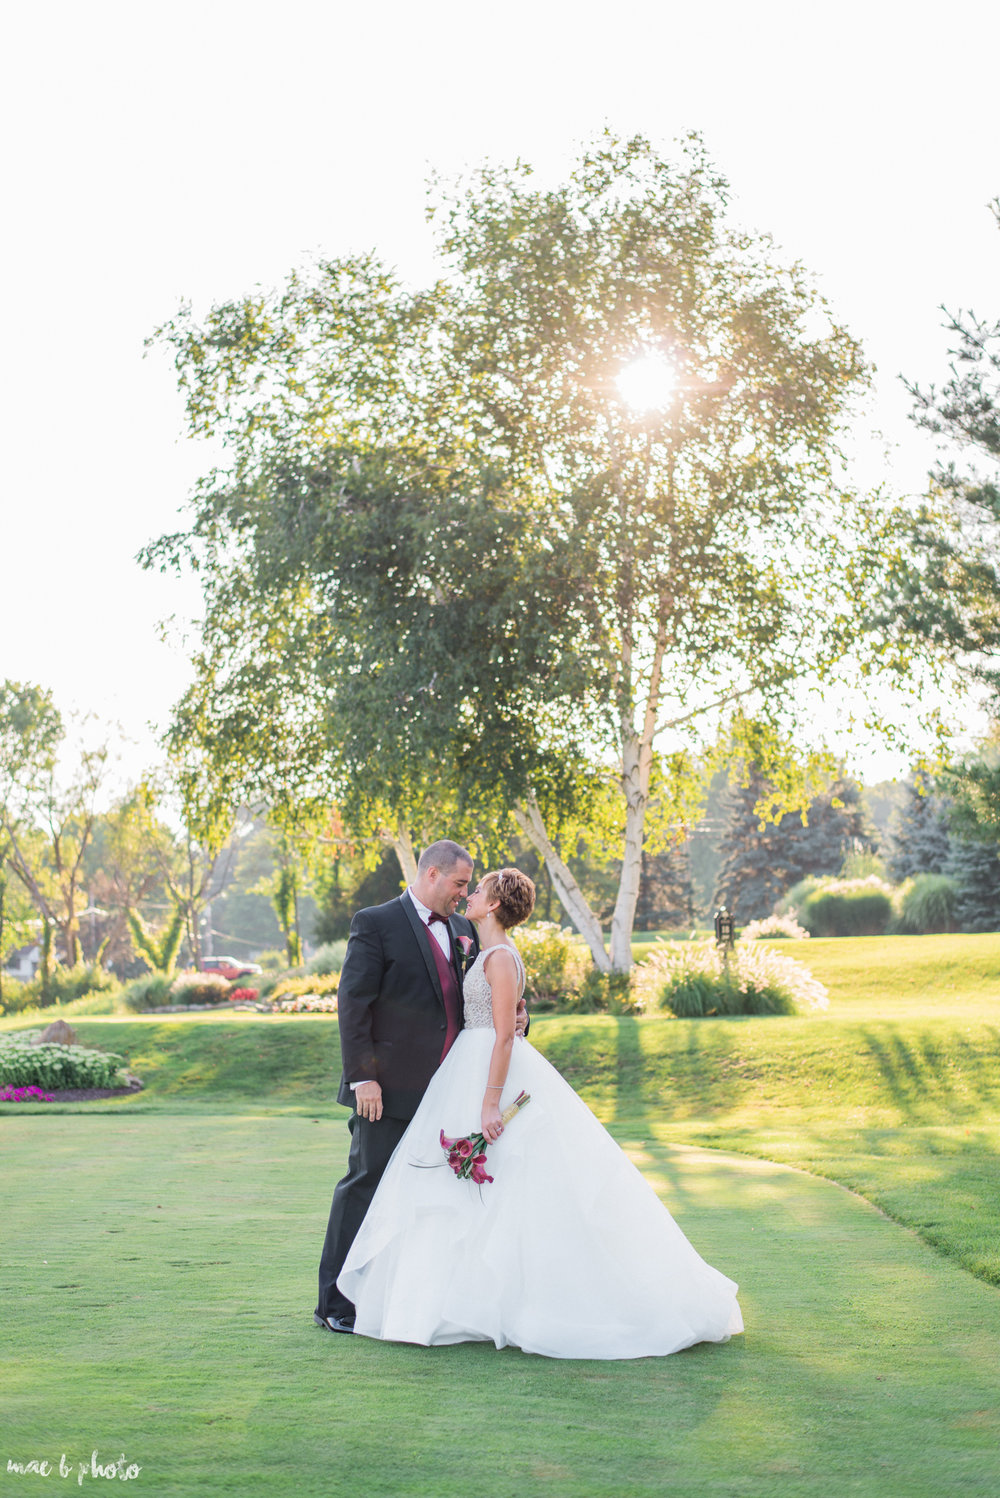 Mary Catherine & Chad's Elegant and Intimate Country Club Wedding at Squaw Creek in Youngstown Ohio by Mae B Photo-65.jpg